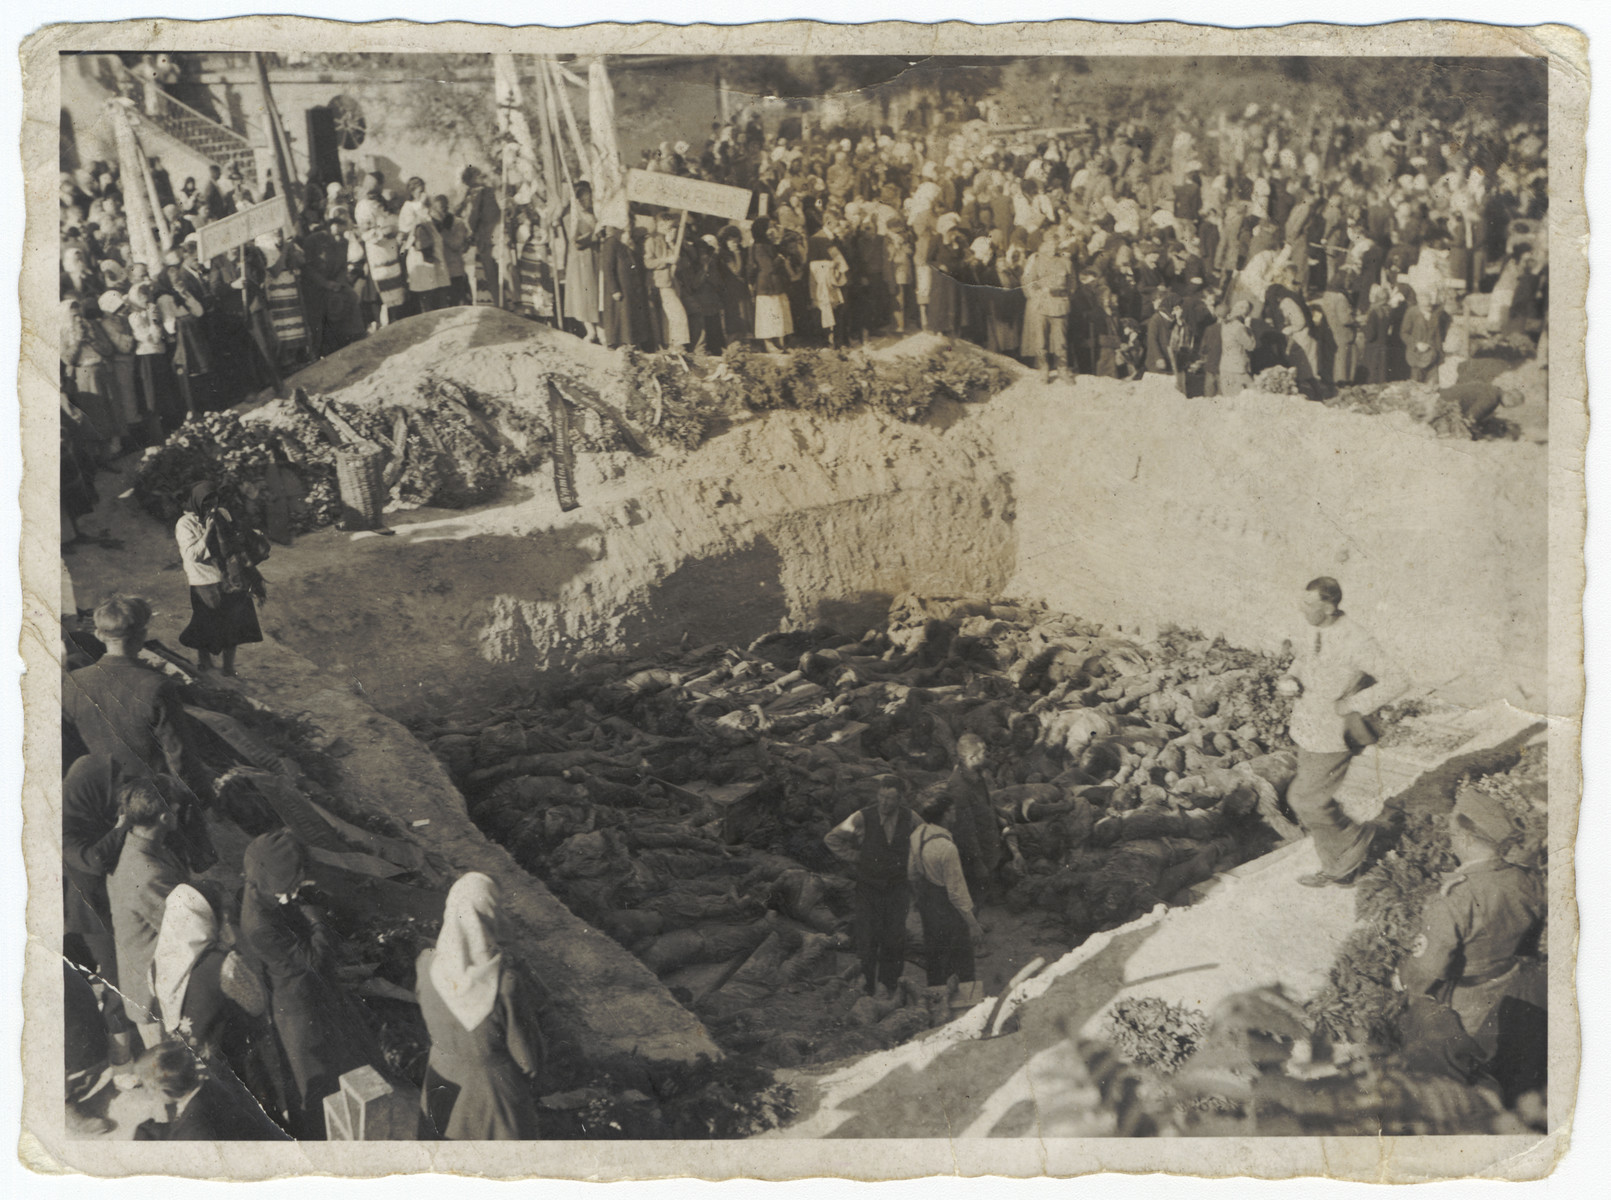 Civilians gather by a mass grave [probably during the invasion of the Soviet Union.]